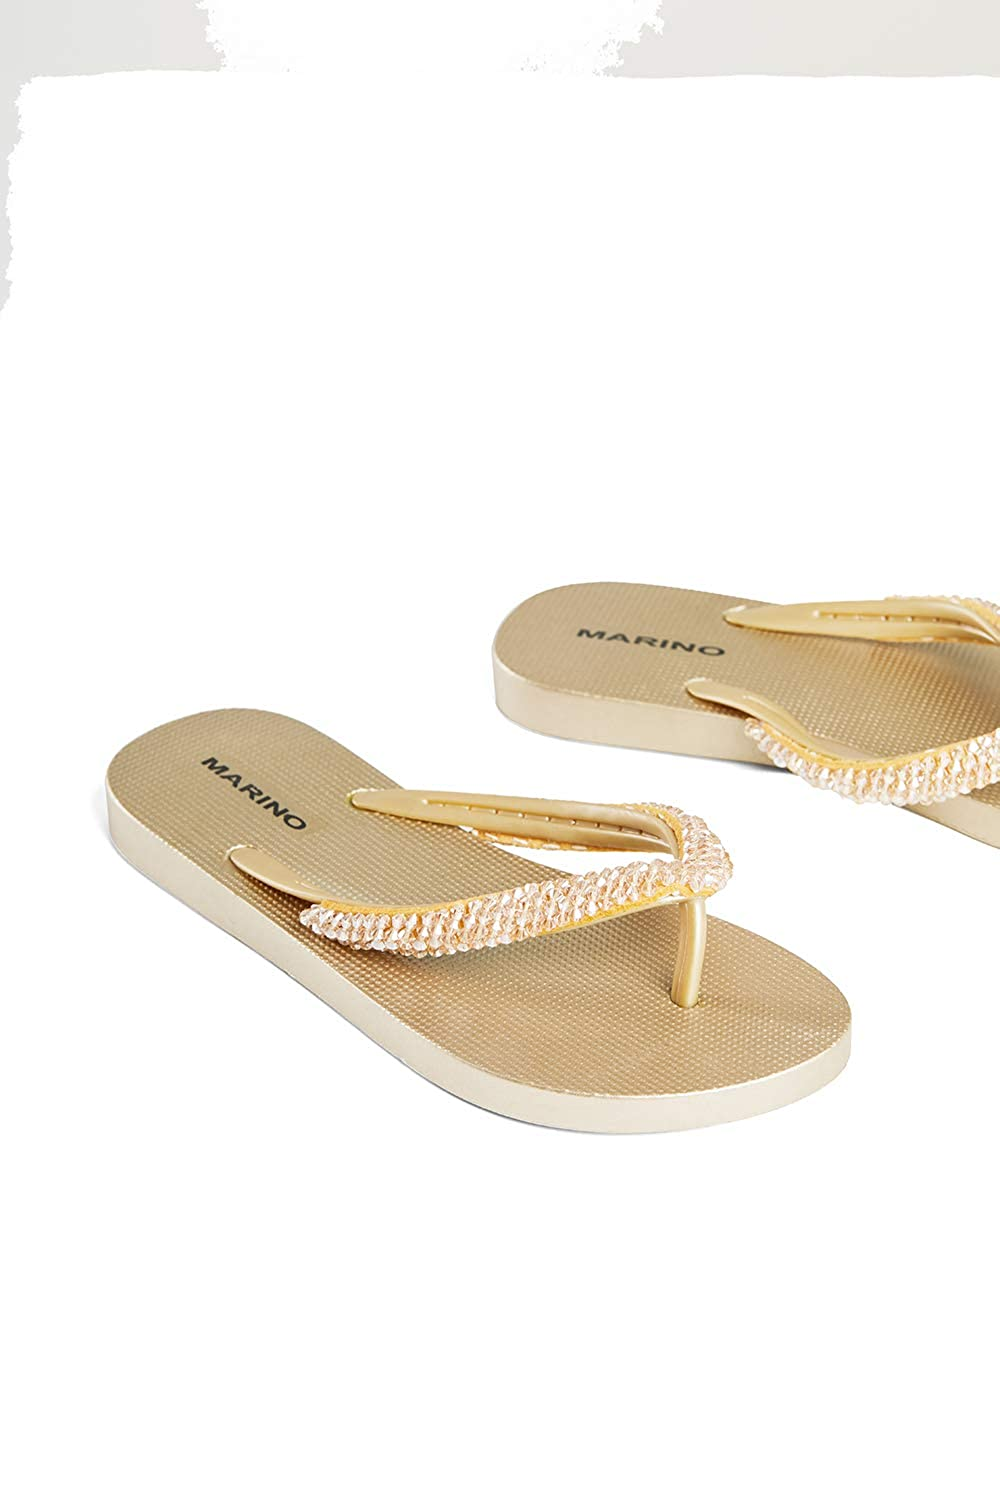 d91a98f7f Shoes YC.MARINO Ladies Silver Summer Sandals Cute Sparkly Diamante Flip  Flops for Women